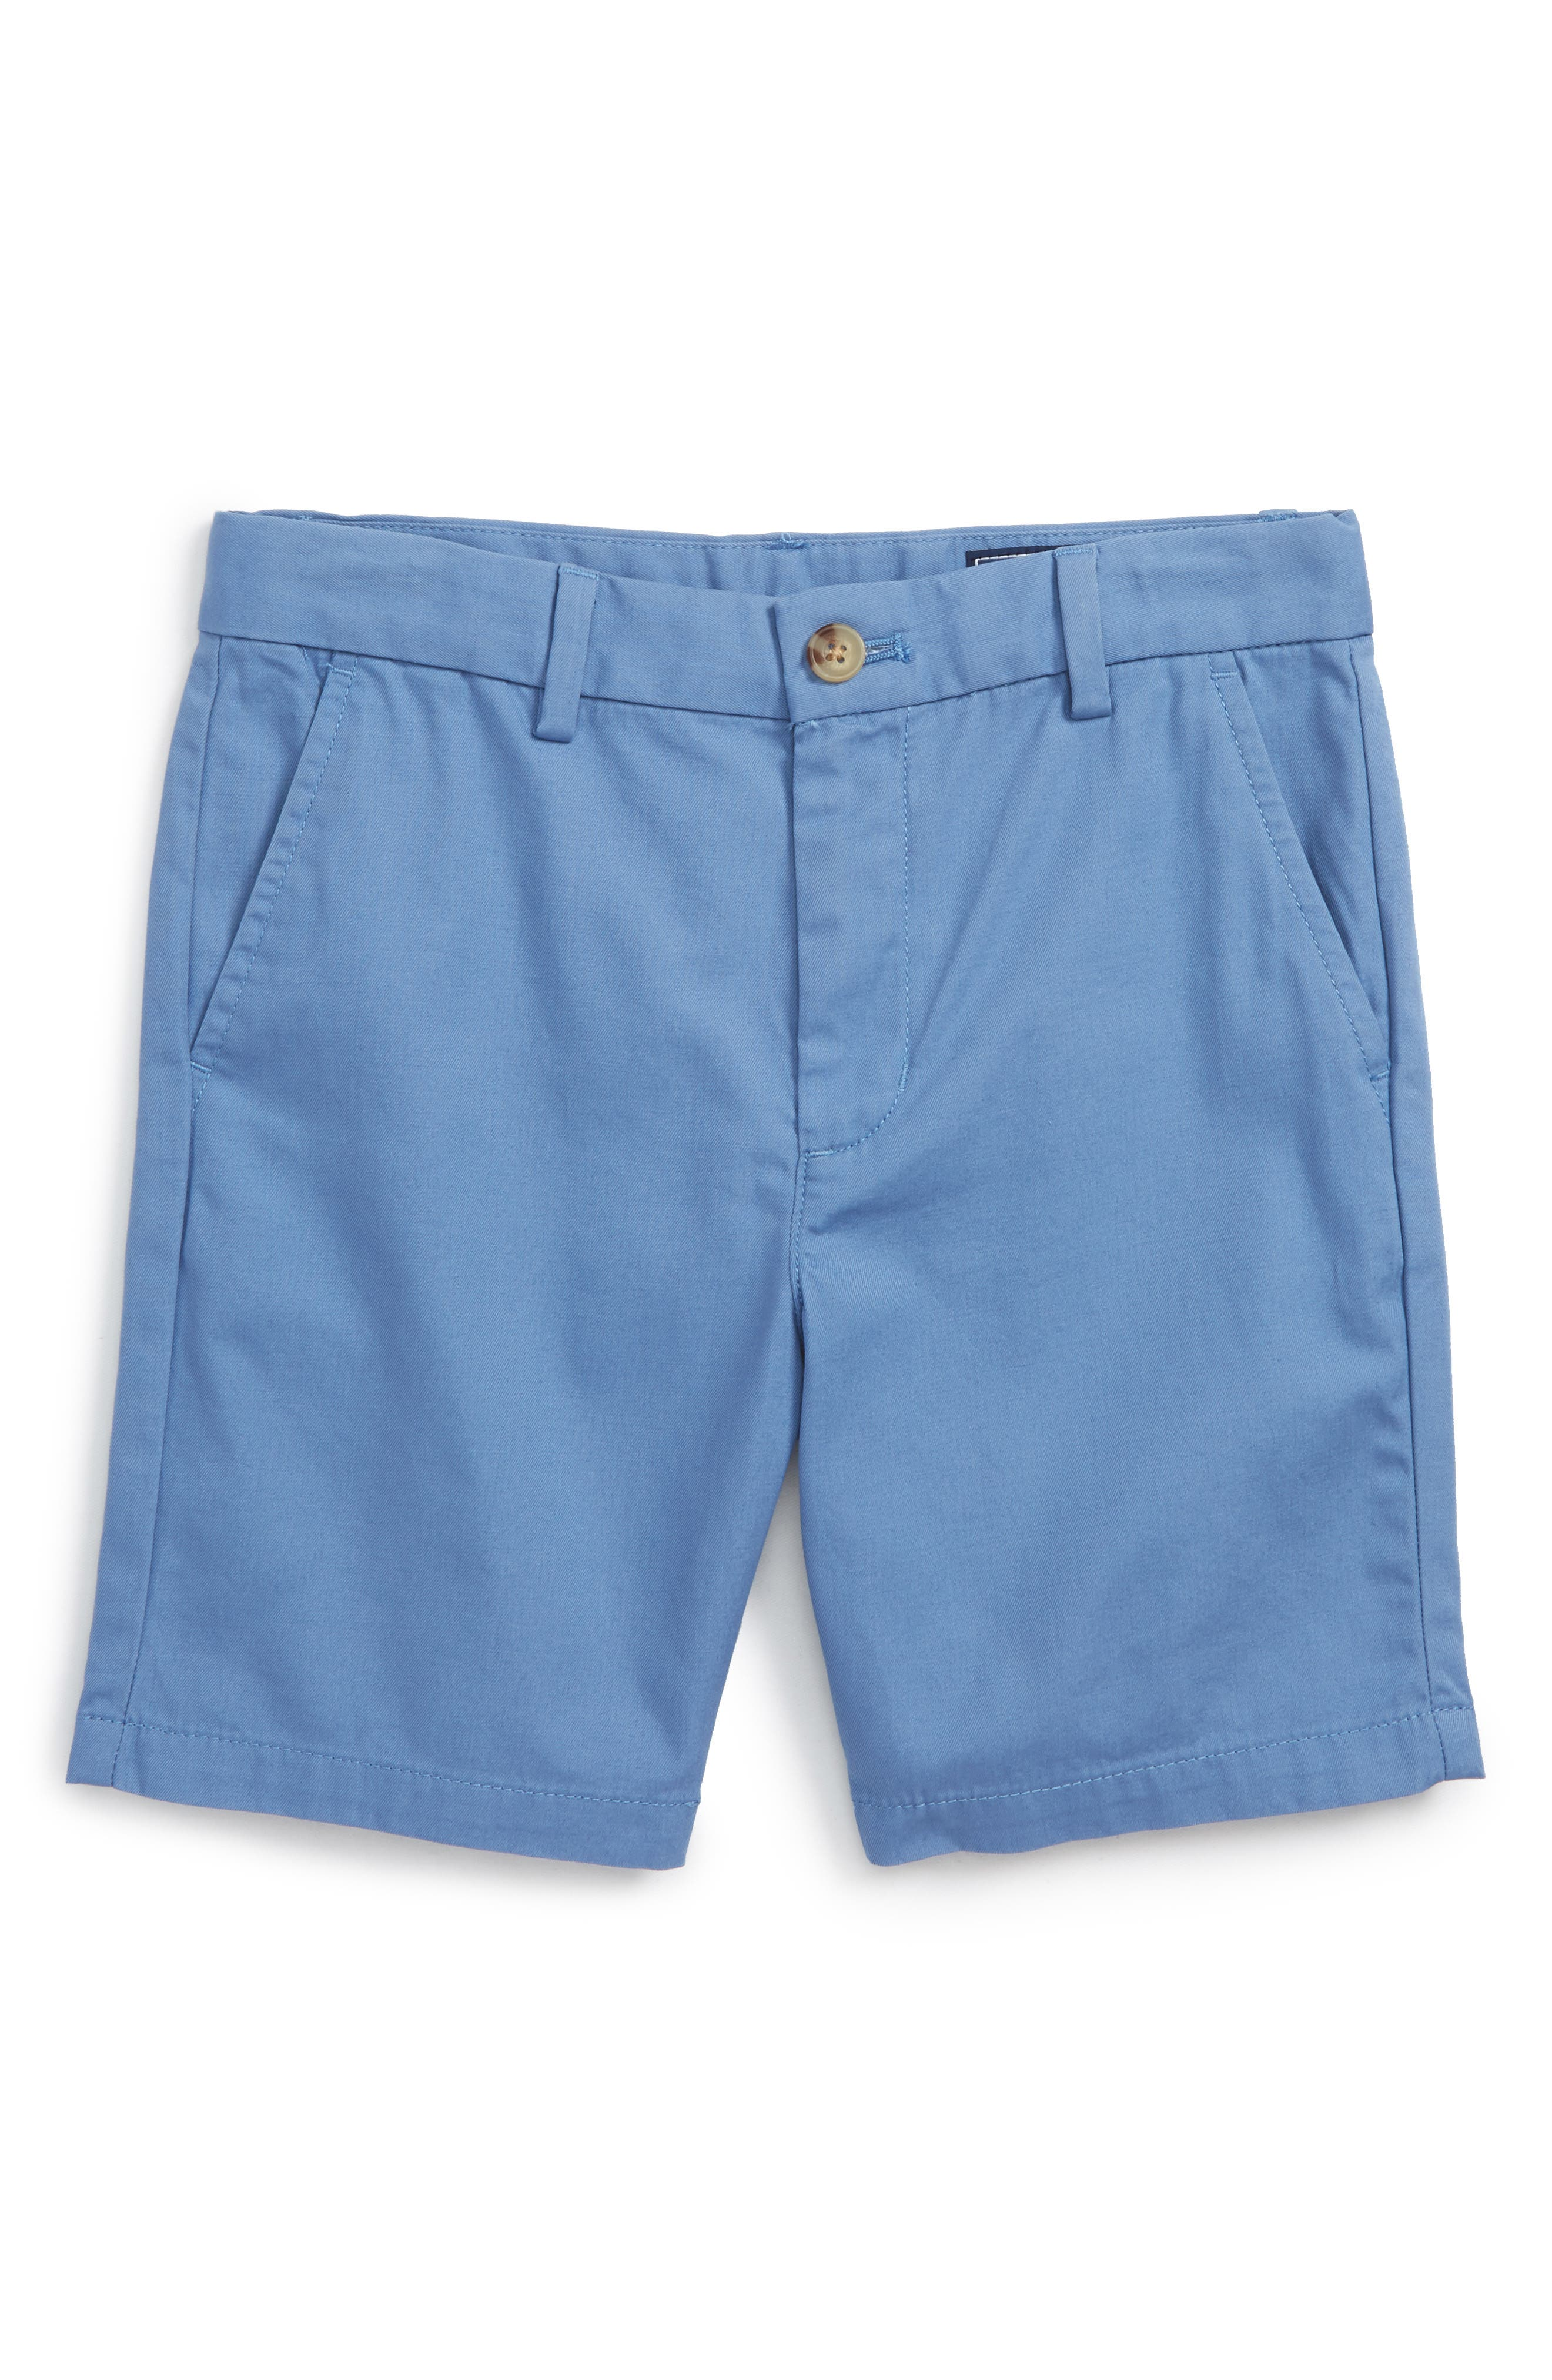 Summer - Breaker Twill Shorts,                             Main thumbnail 6, color,